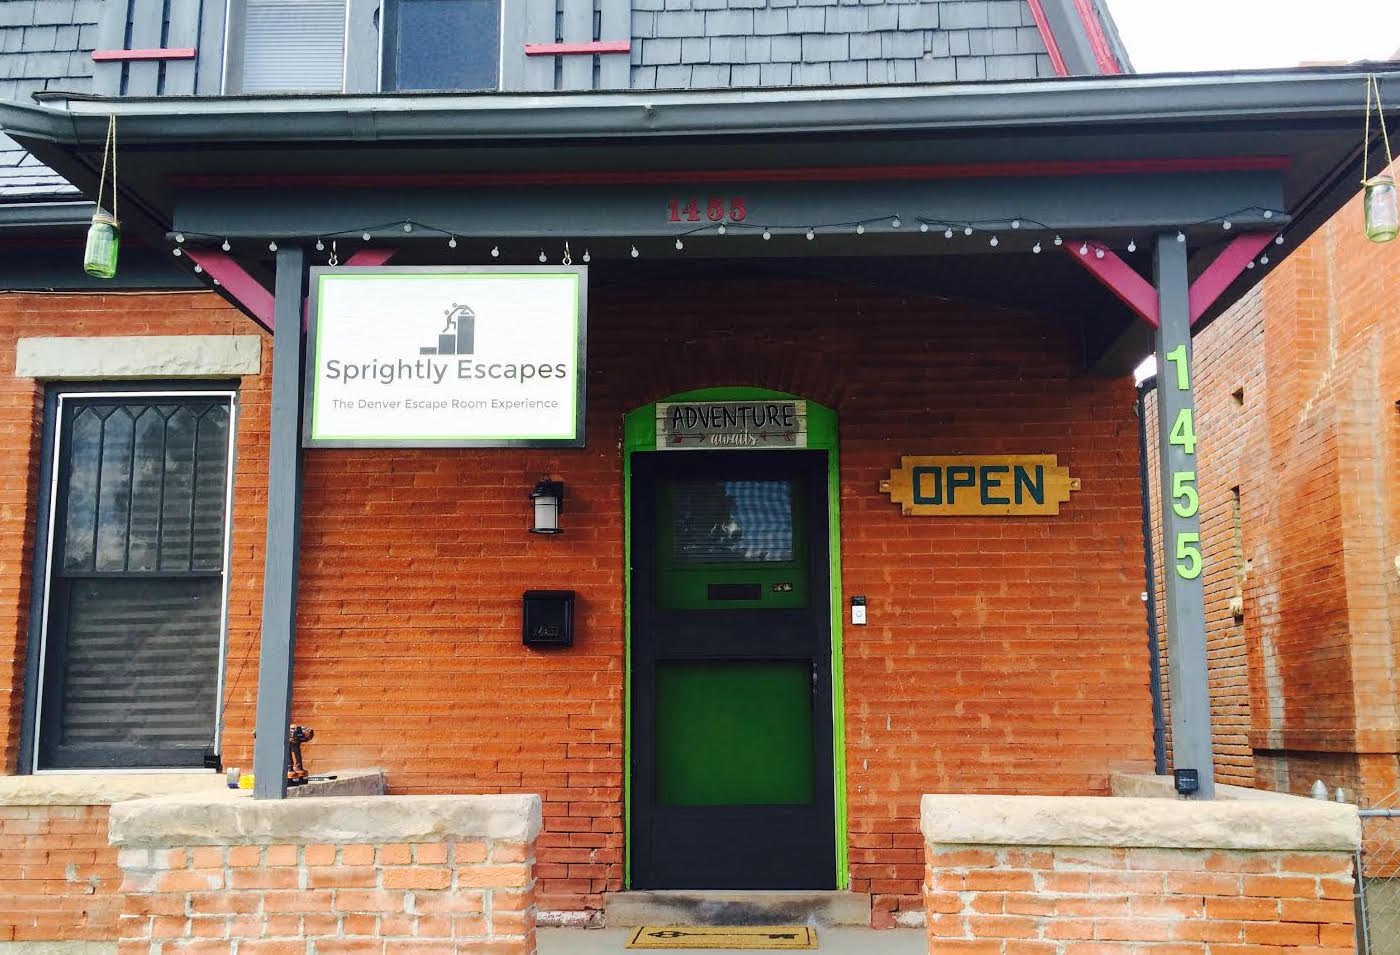 Sprightly Escapes: The Denver Escape Room Experience